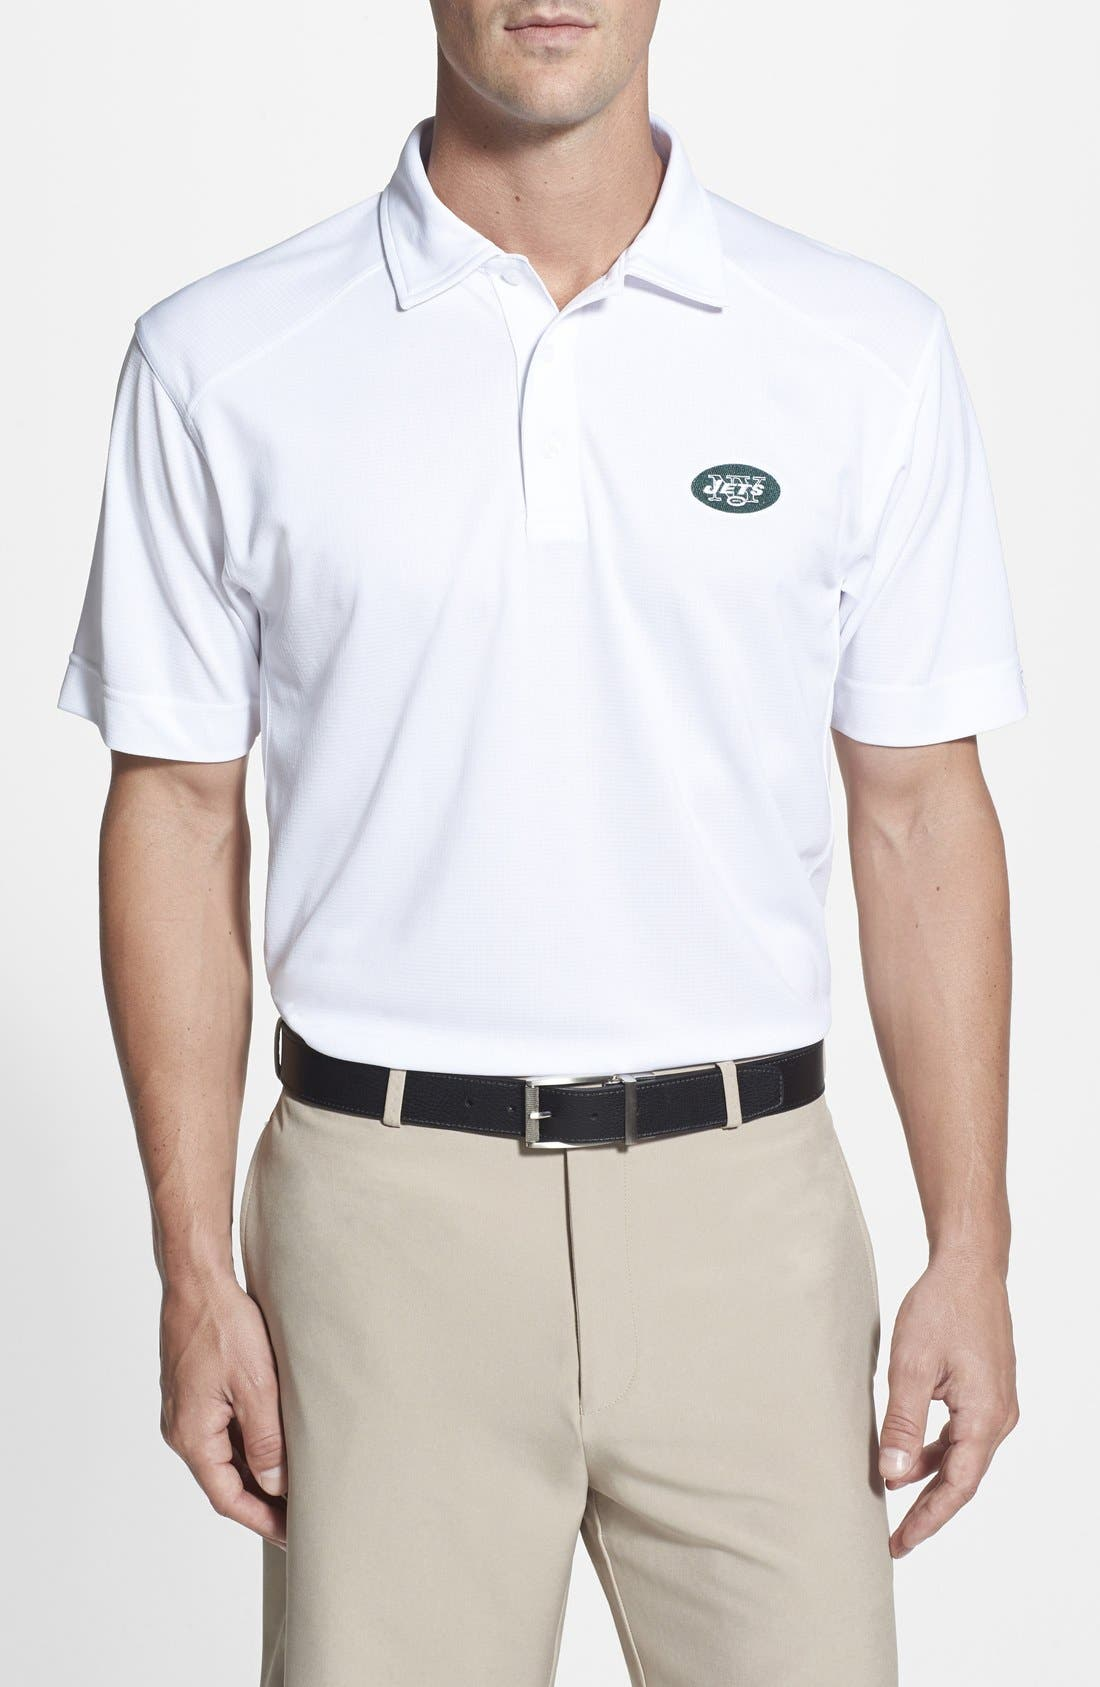 Main Image - Cutter & Buck New York Jets - Genre DryTec Moisture Wicking Polo